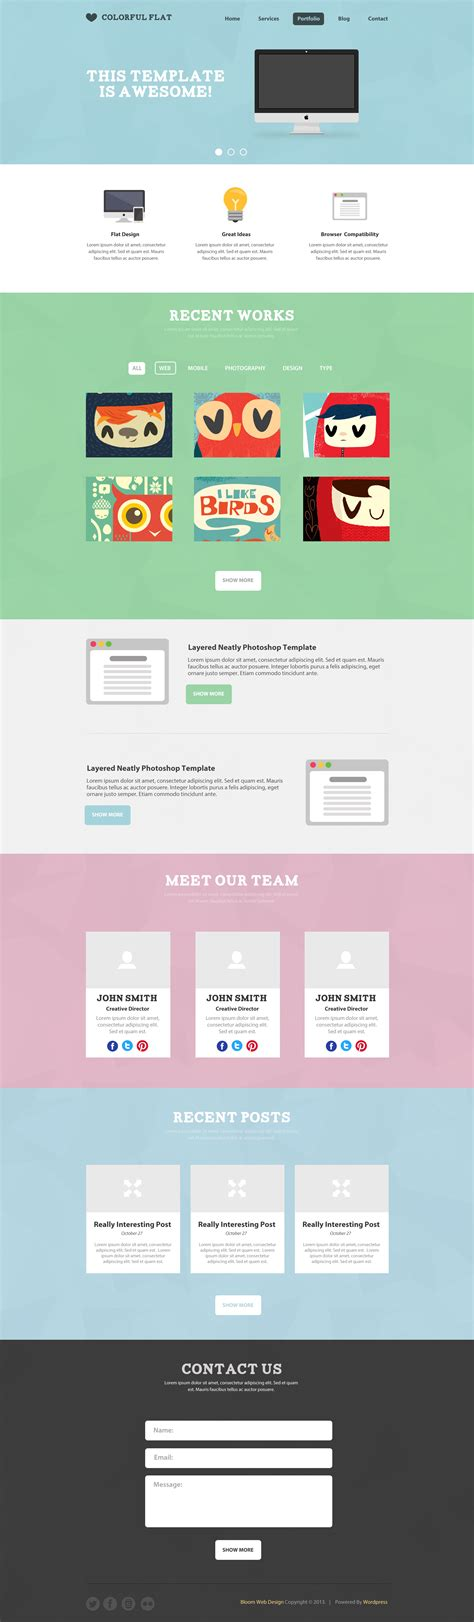 One Page Website Template Free Flat One Page Website Psd Template Free Psd